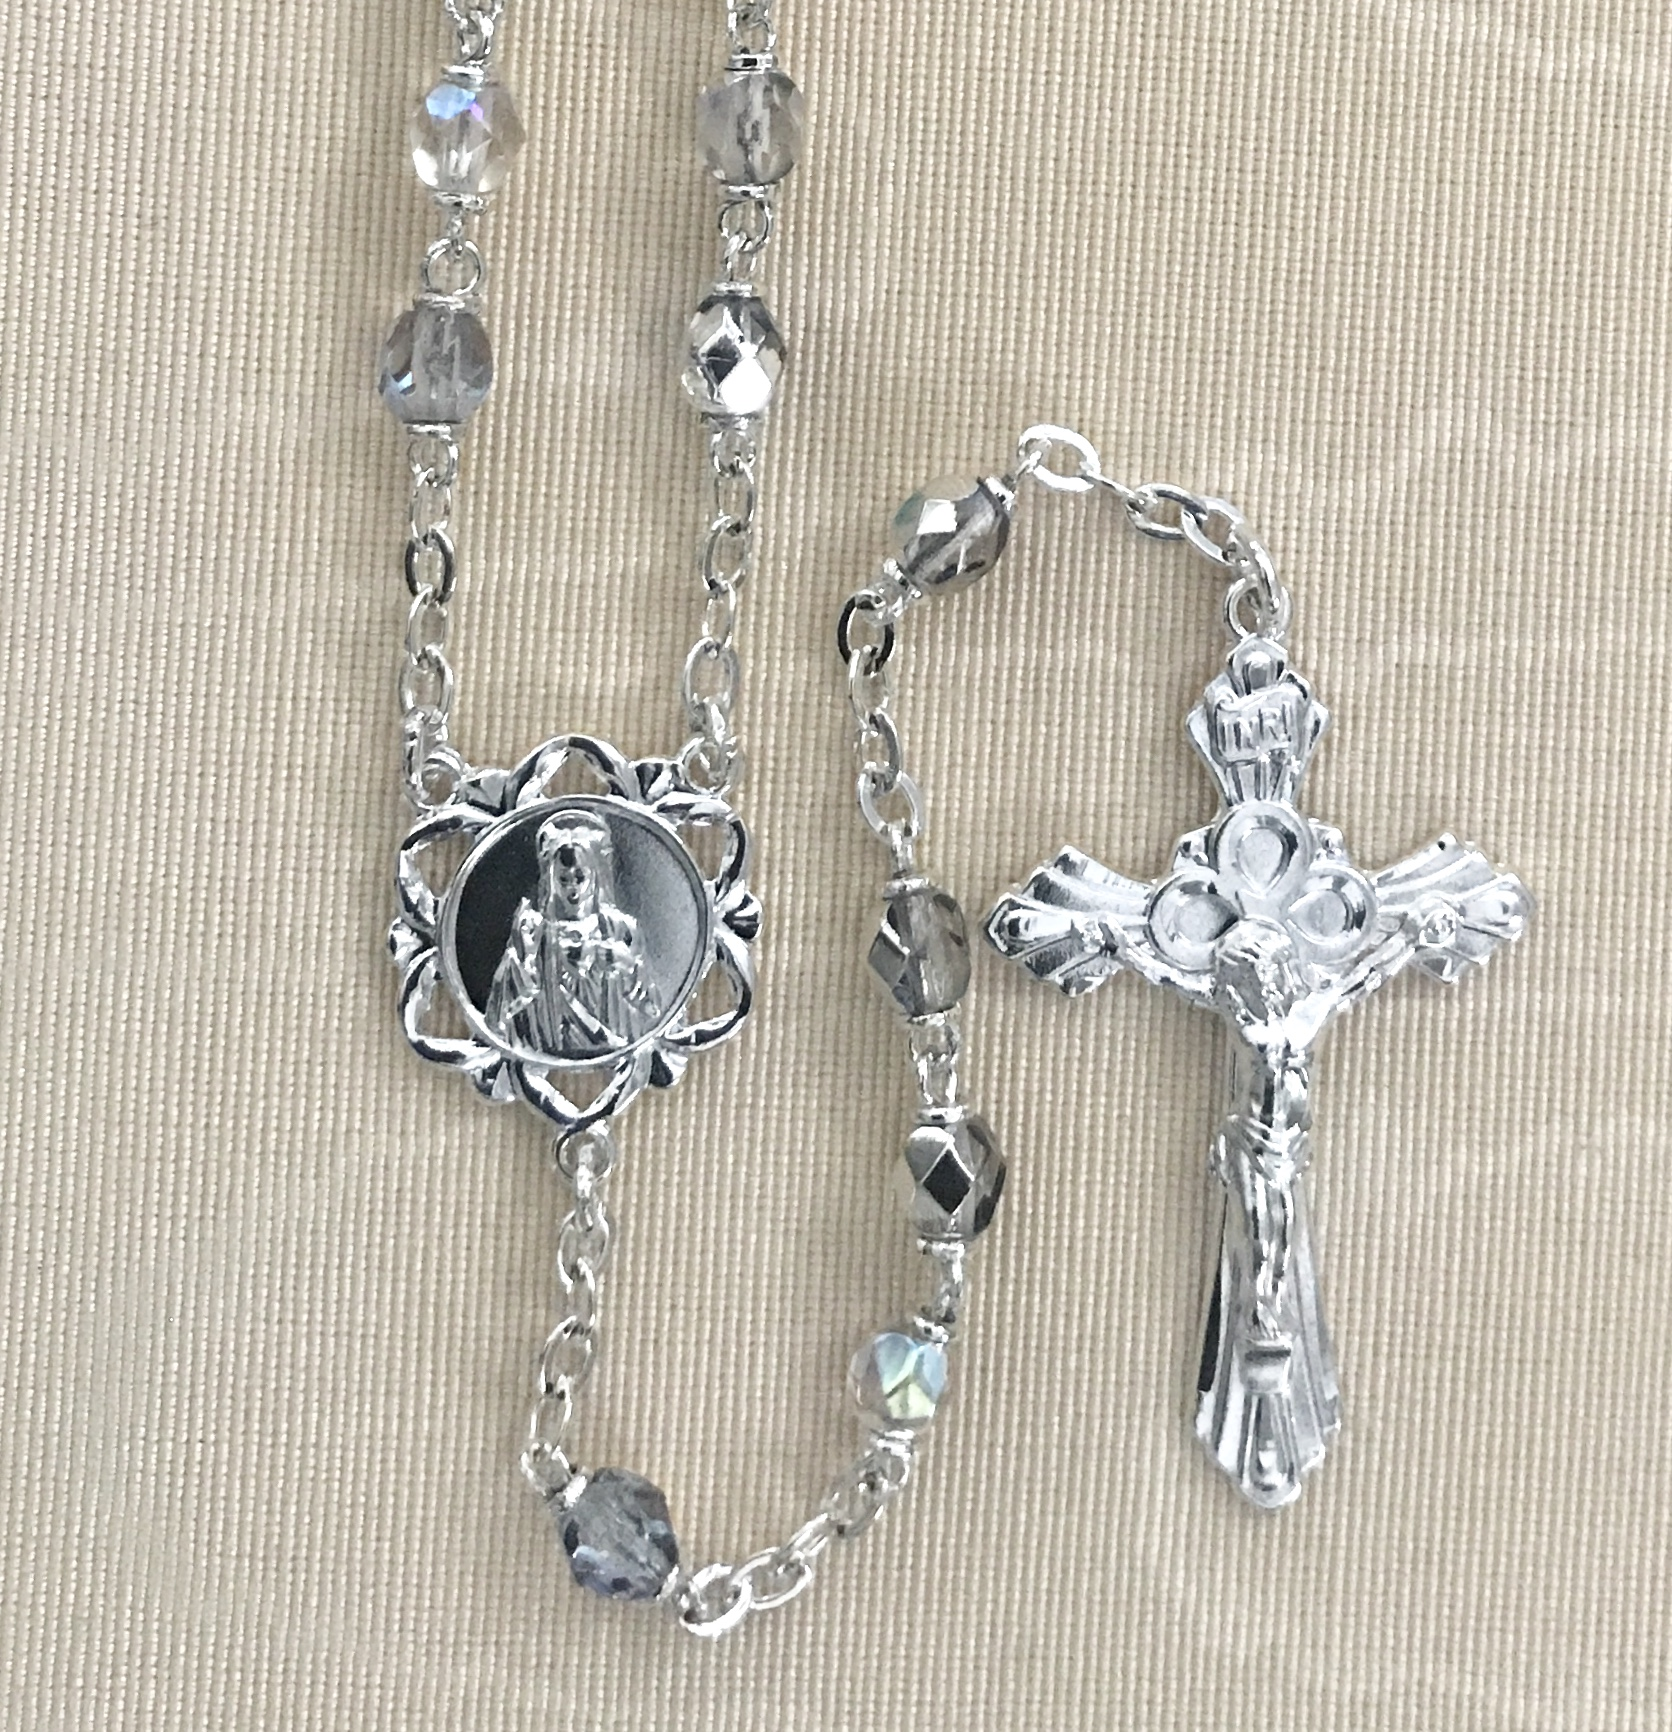 6mm ROUND CRYSTAL AB ROSARY WITH STERLING SILVER PLATED CENTER AND CRUCIFIX GIFT BOXED